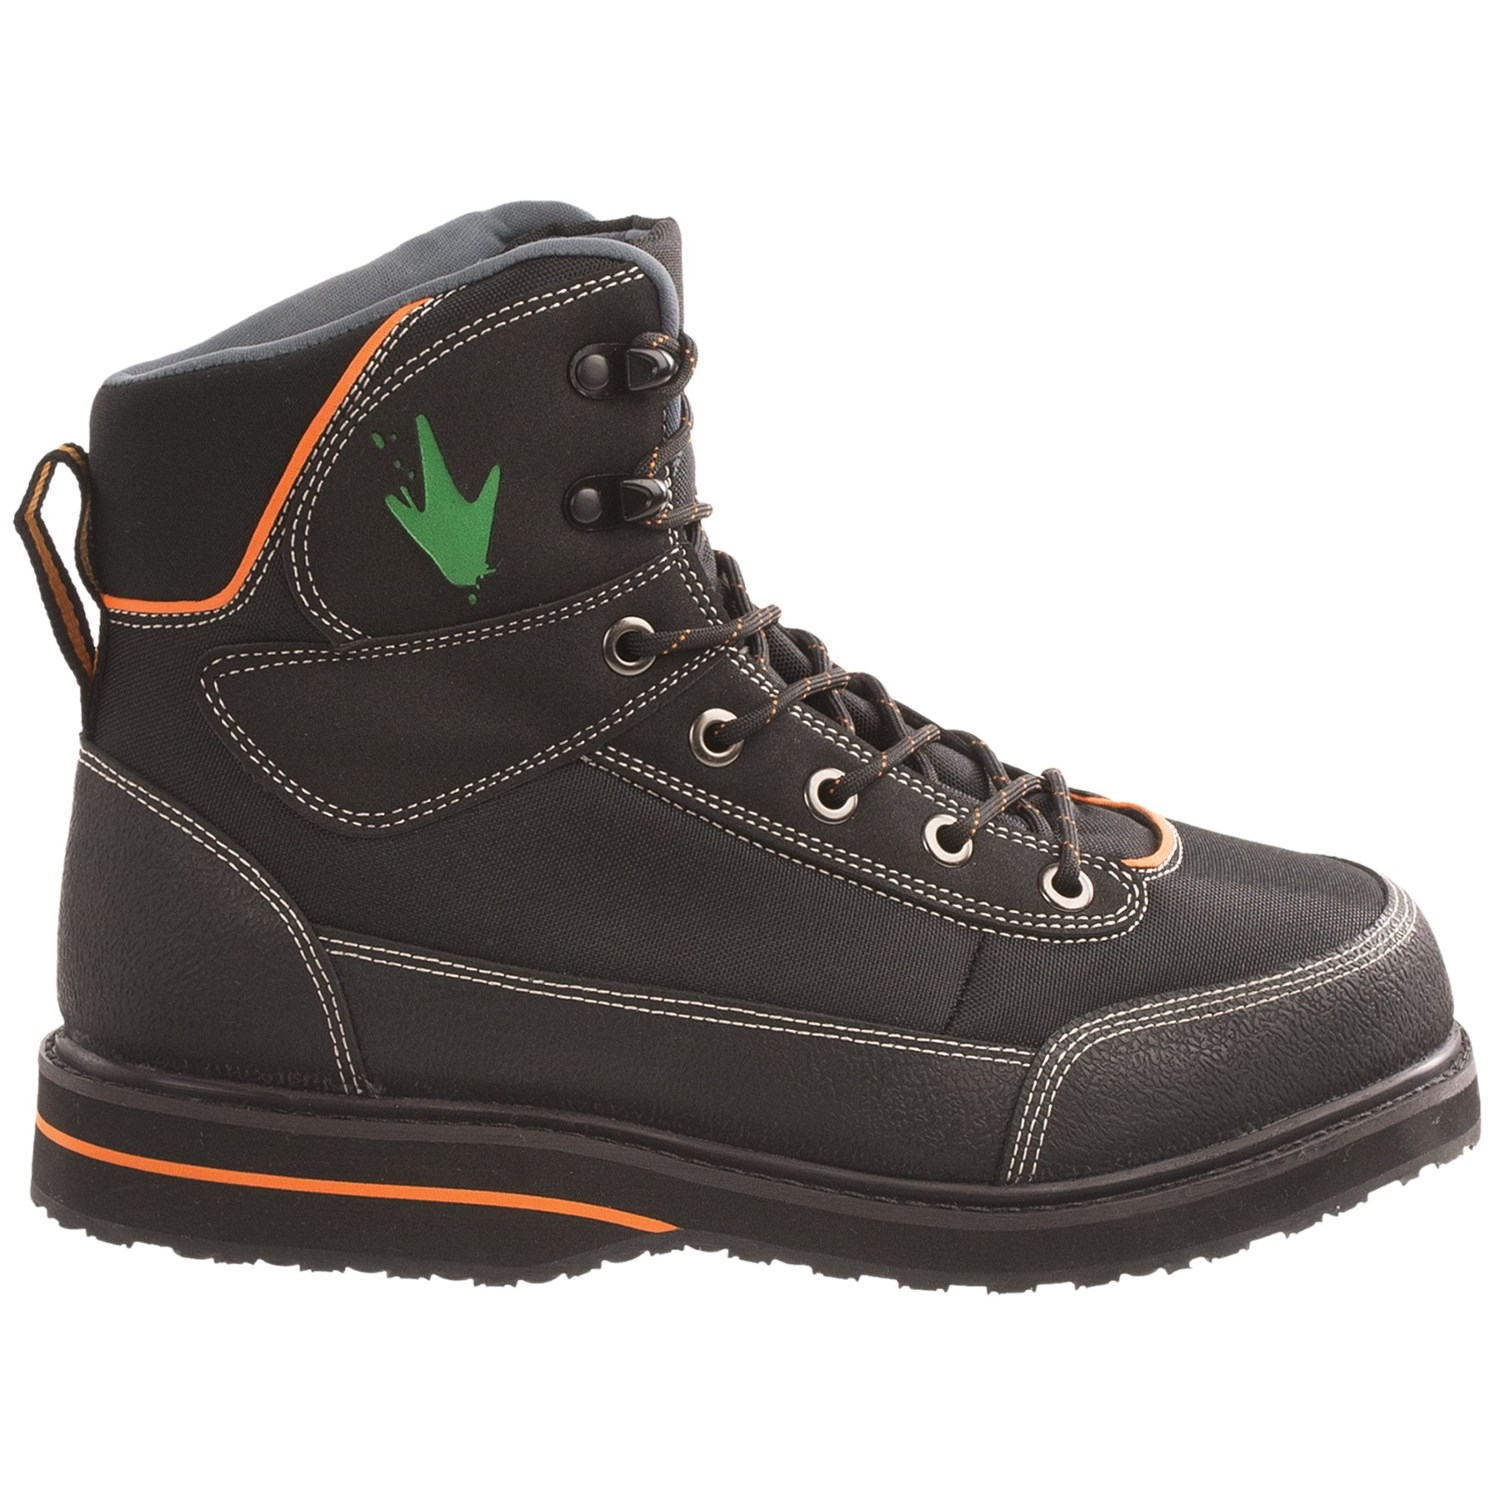 Frogg Toggs Kikker Guide Wading Boots For Men Save 68